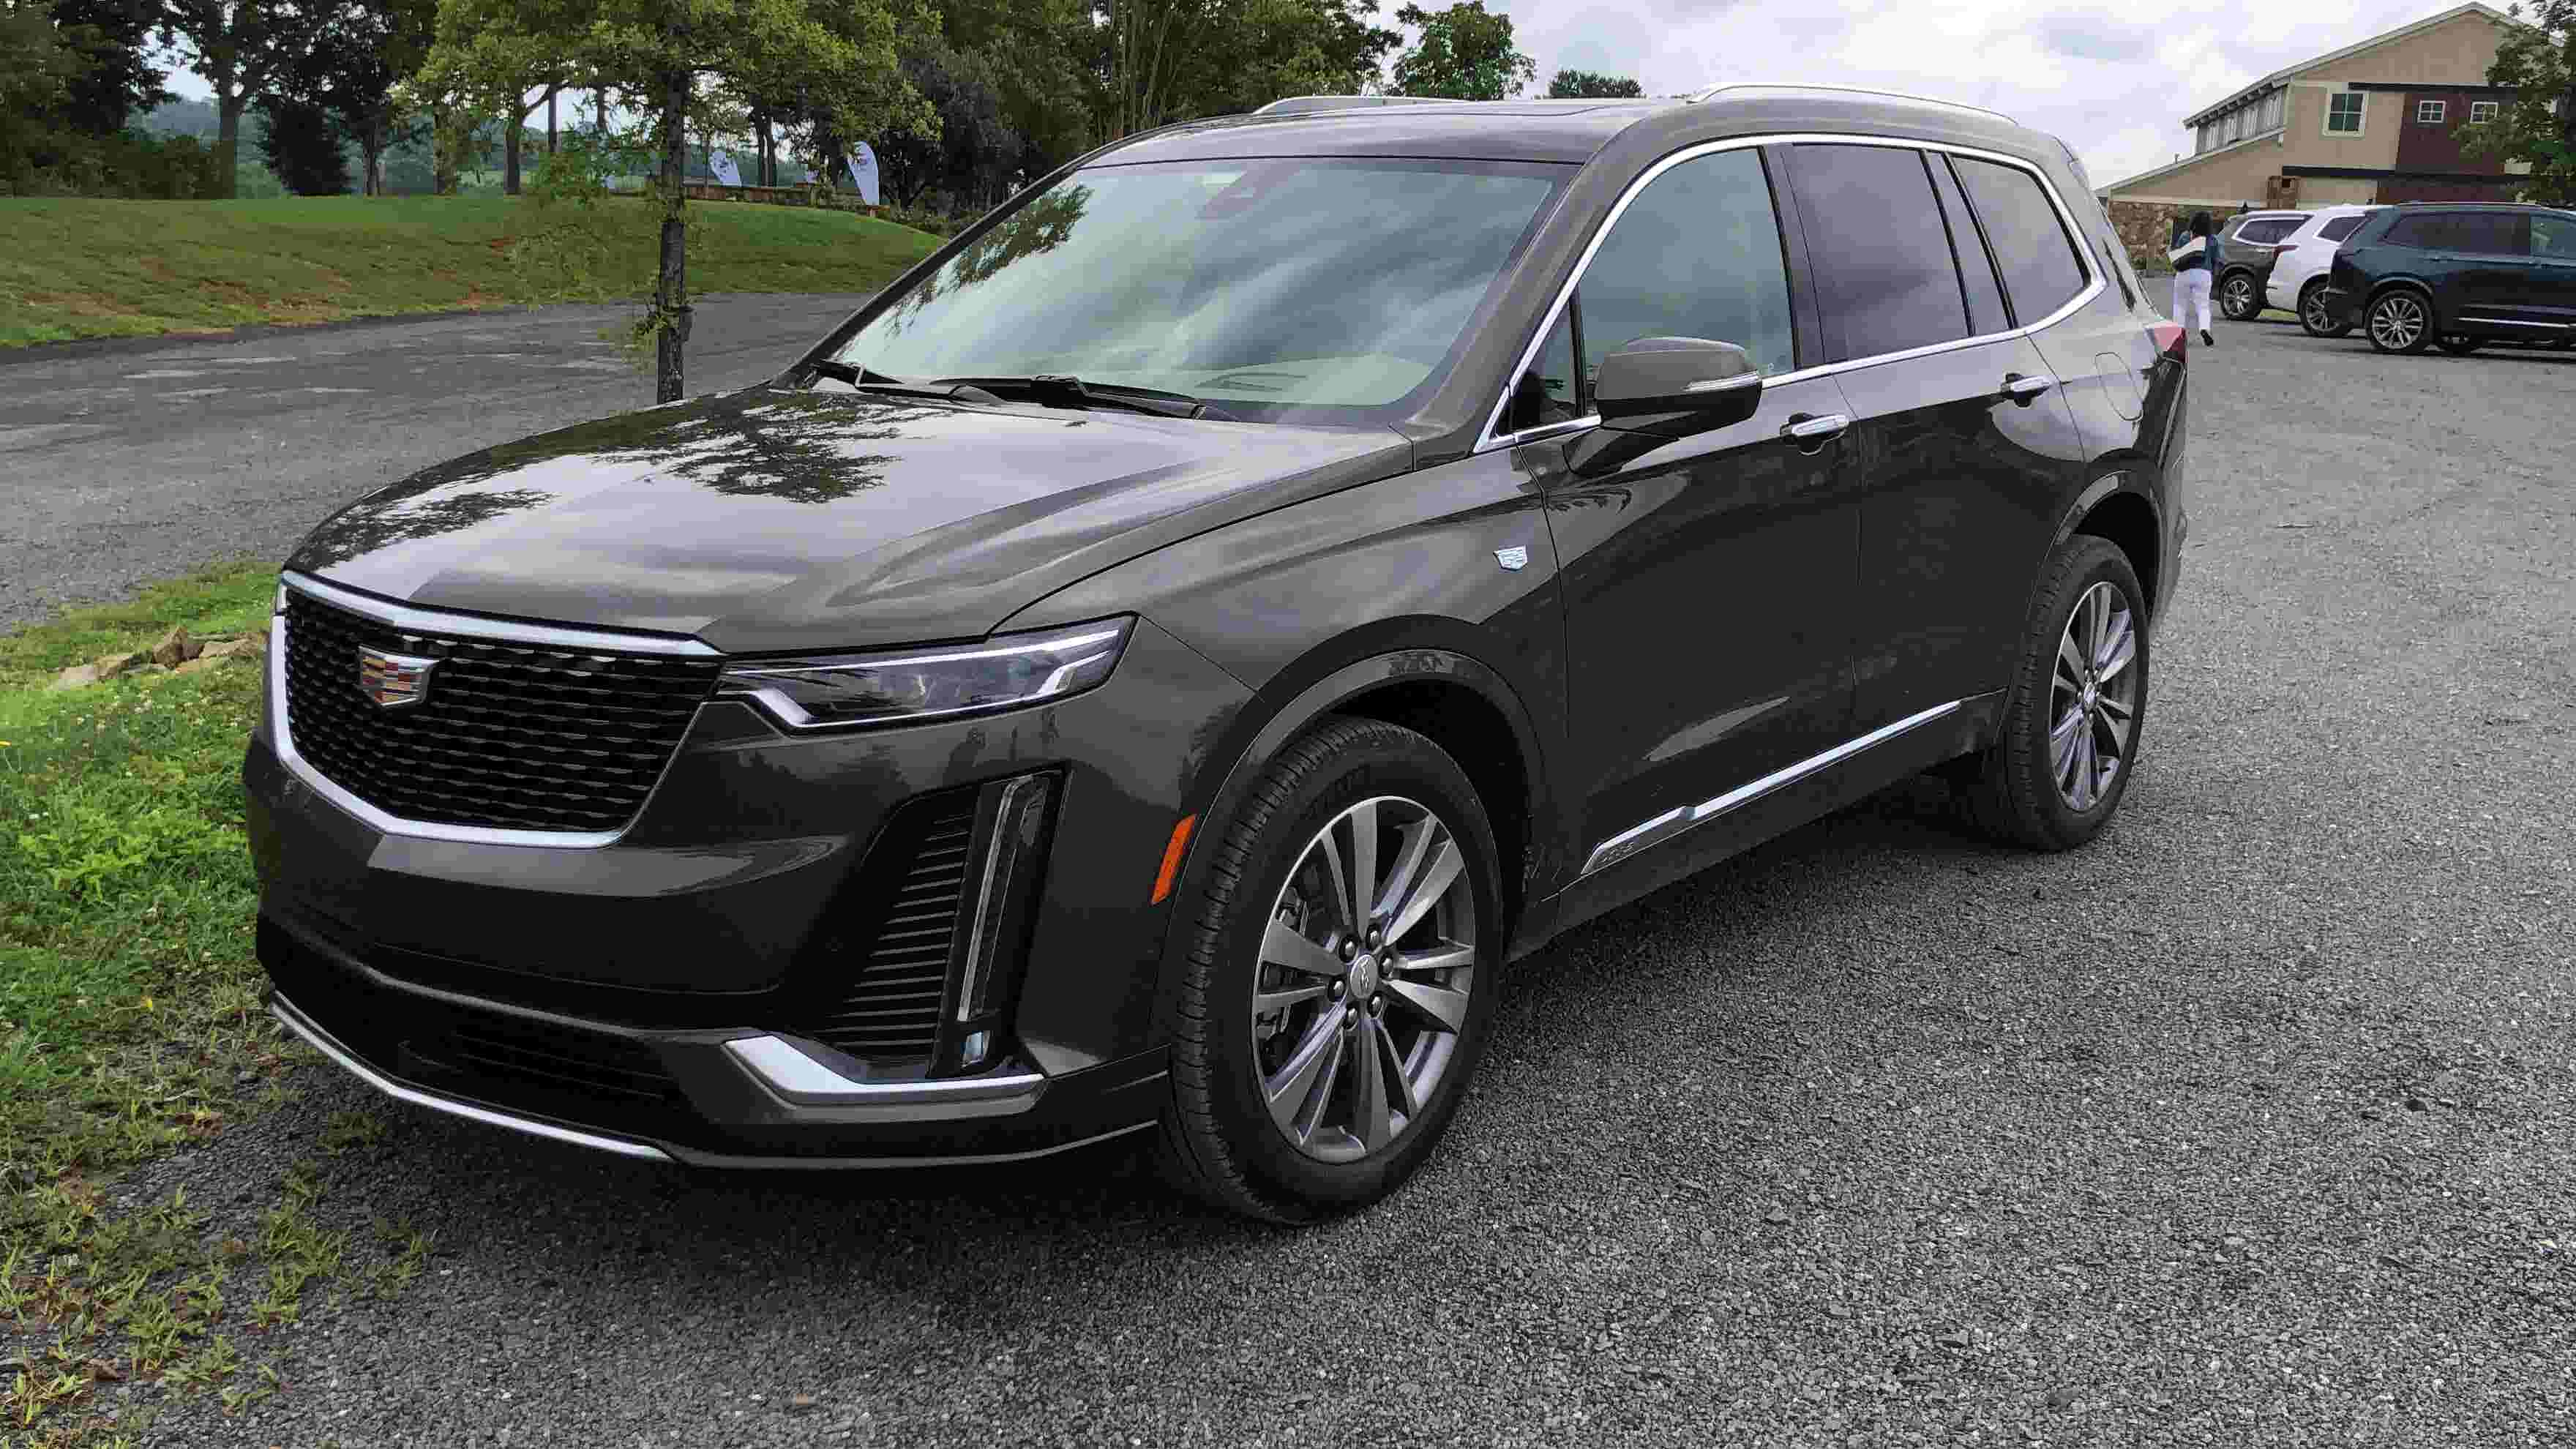 Suv With Third Row >> 2020 Cadillac Xt6 Review 3 Row Suv Tackles Luxury Leaders